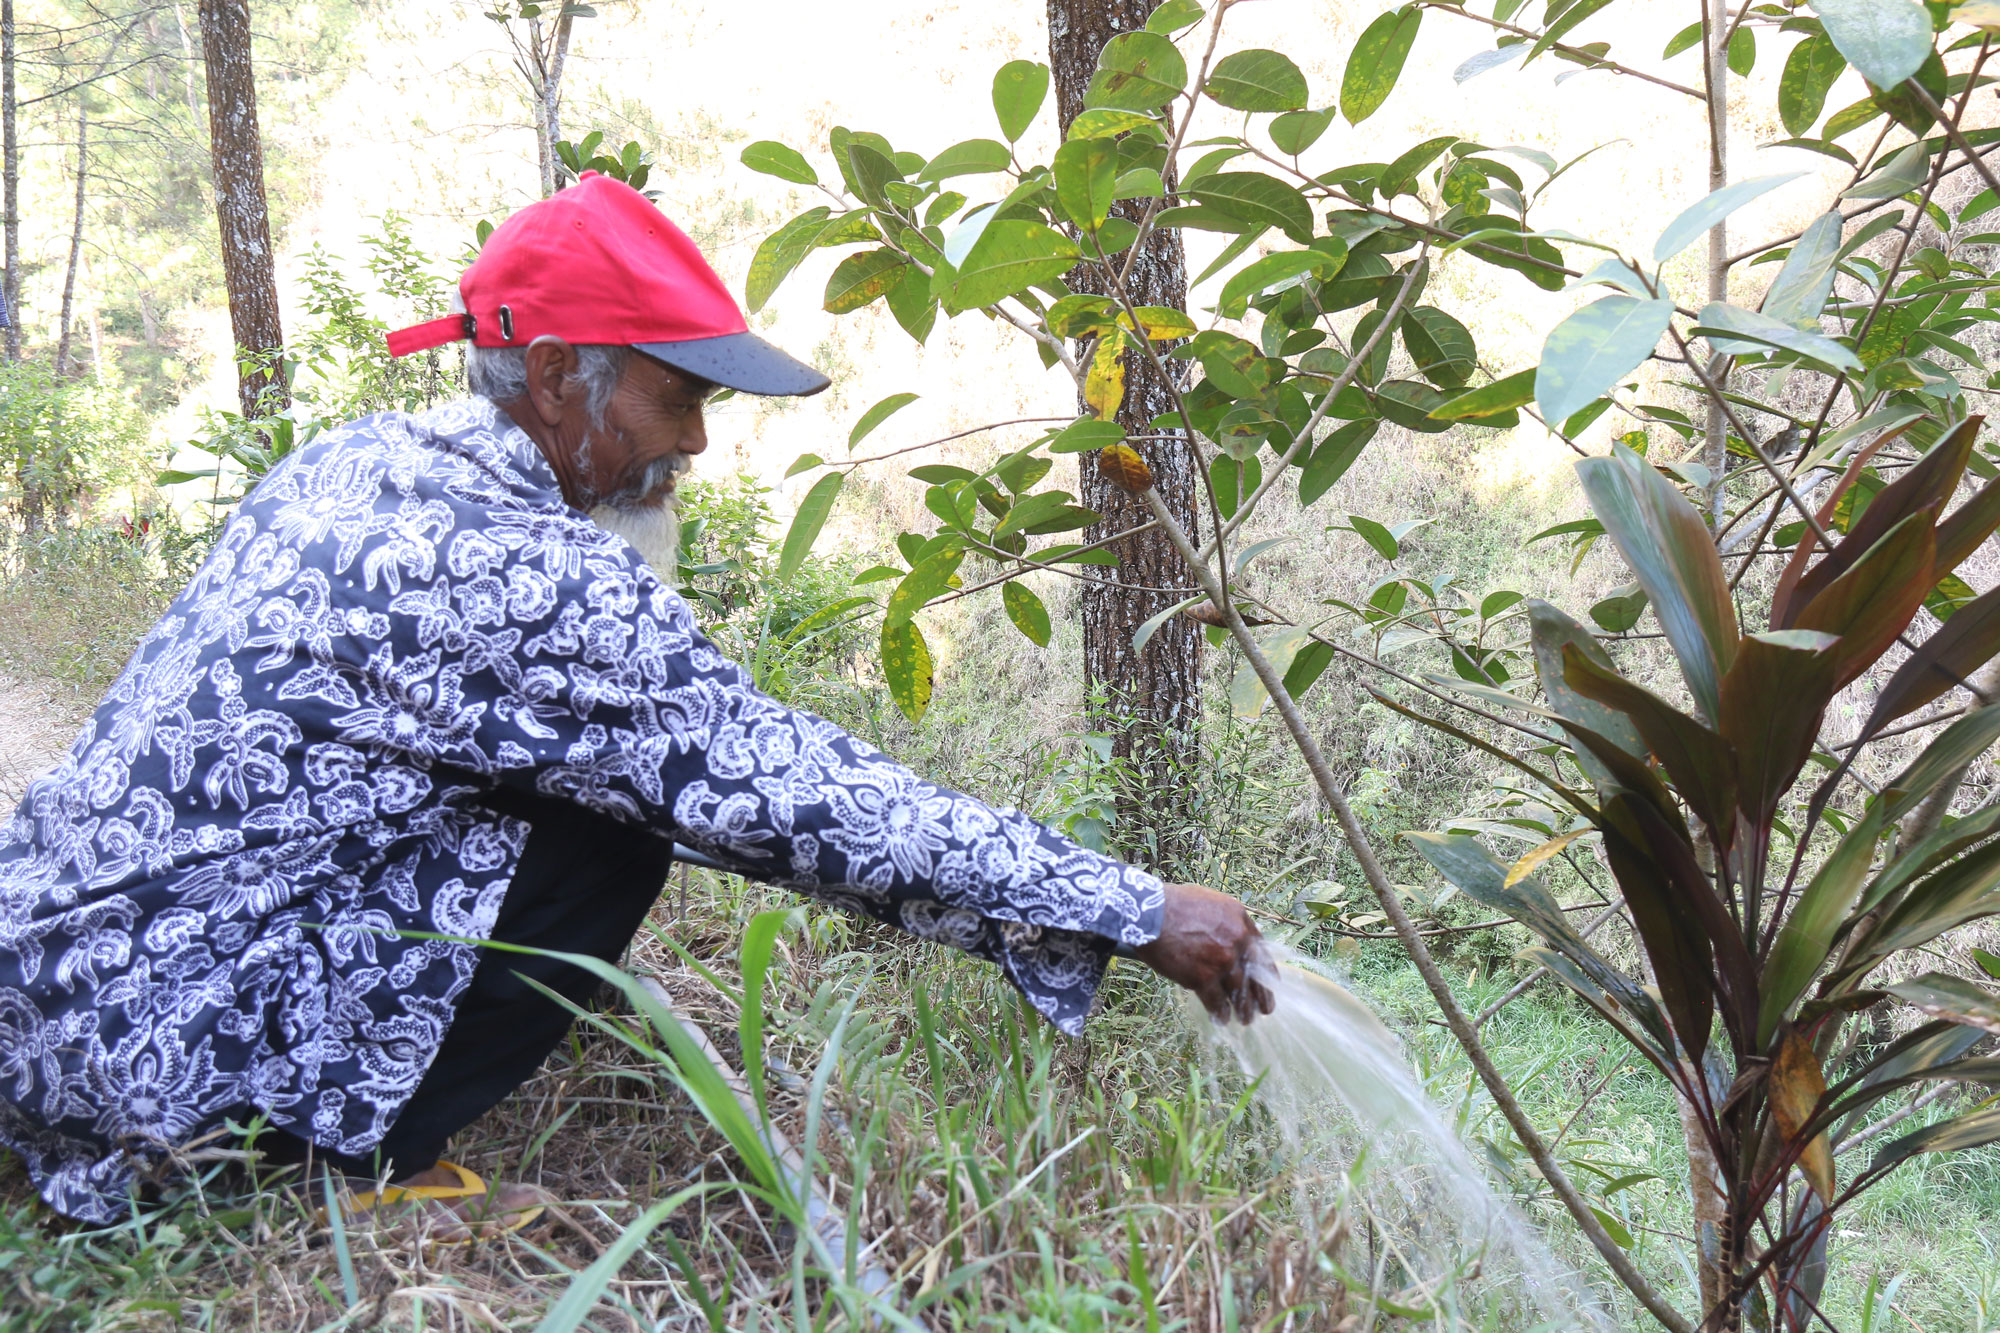 Reforestation project brings back water to C. Java villages